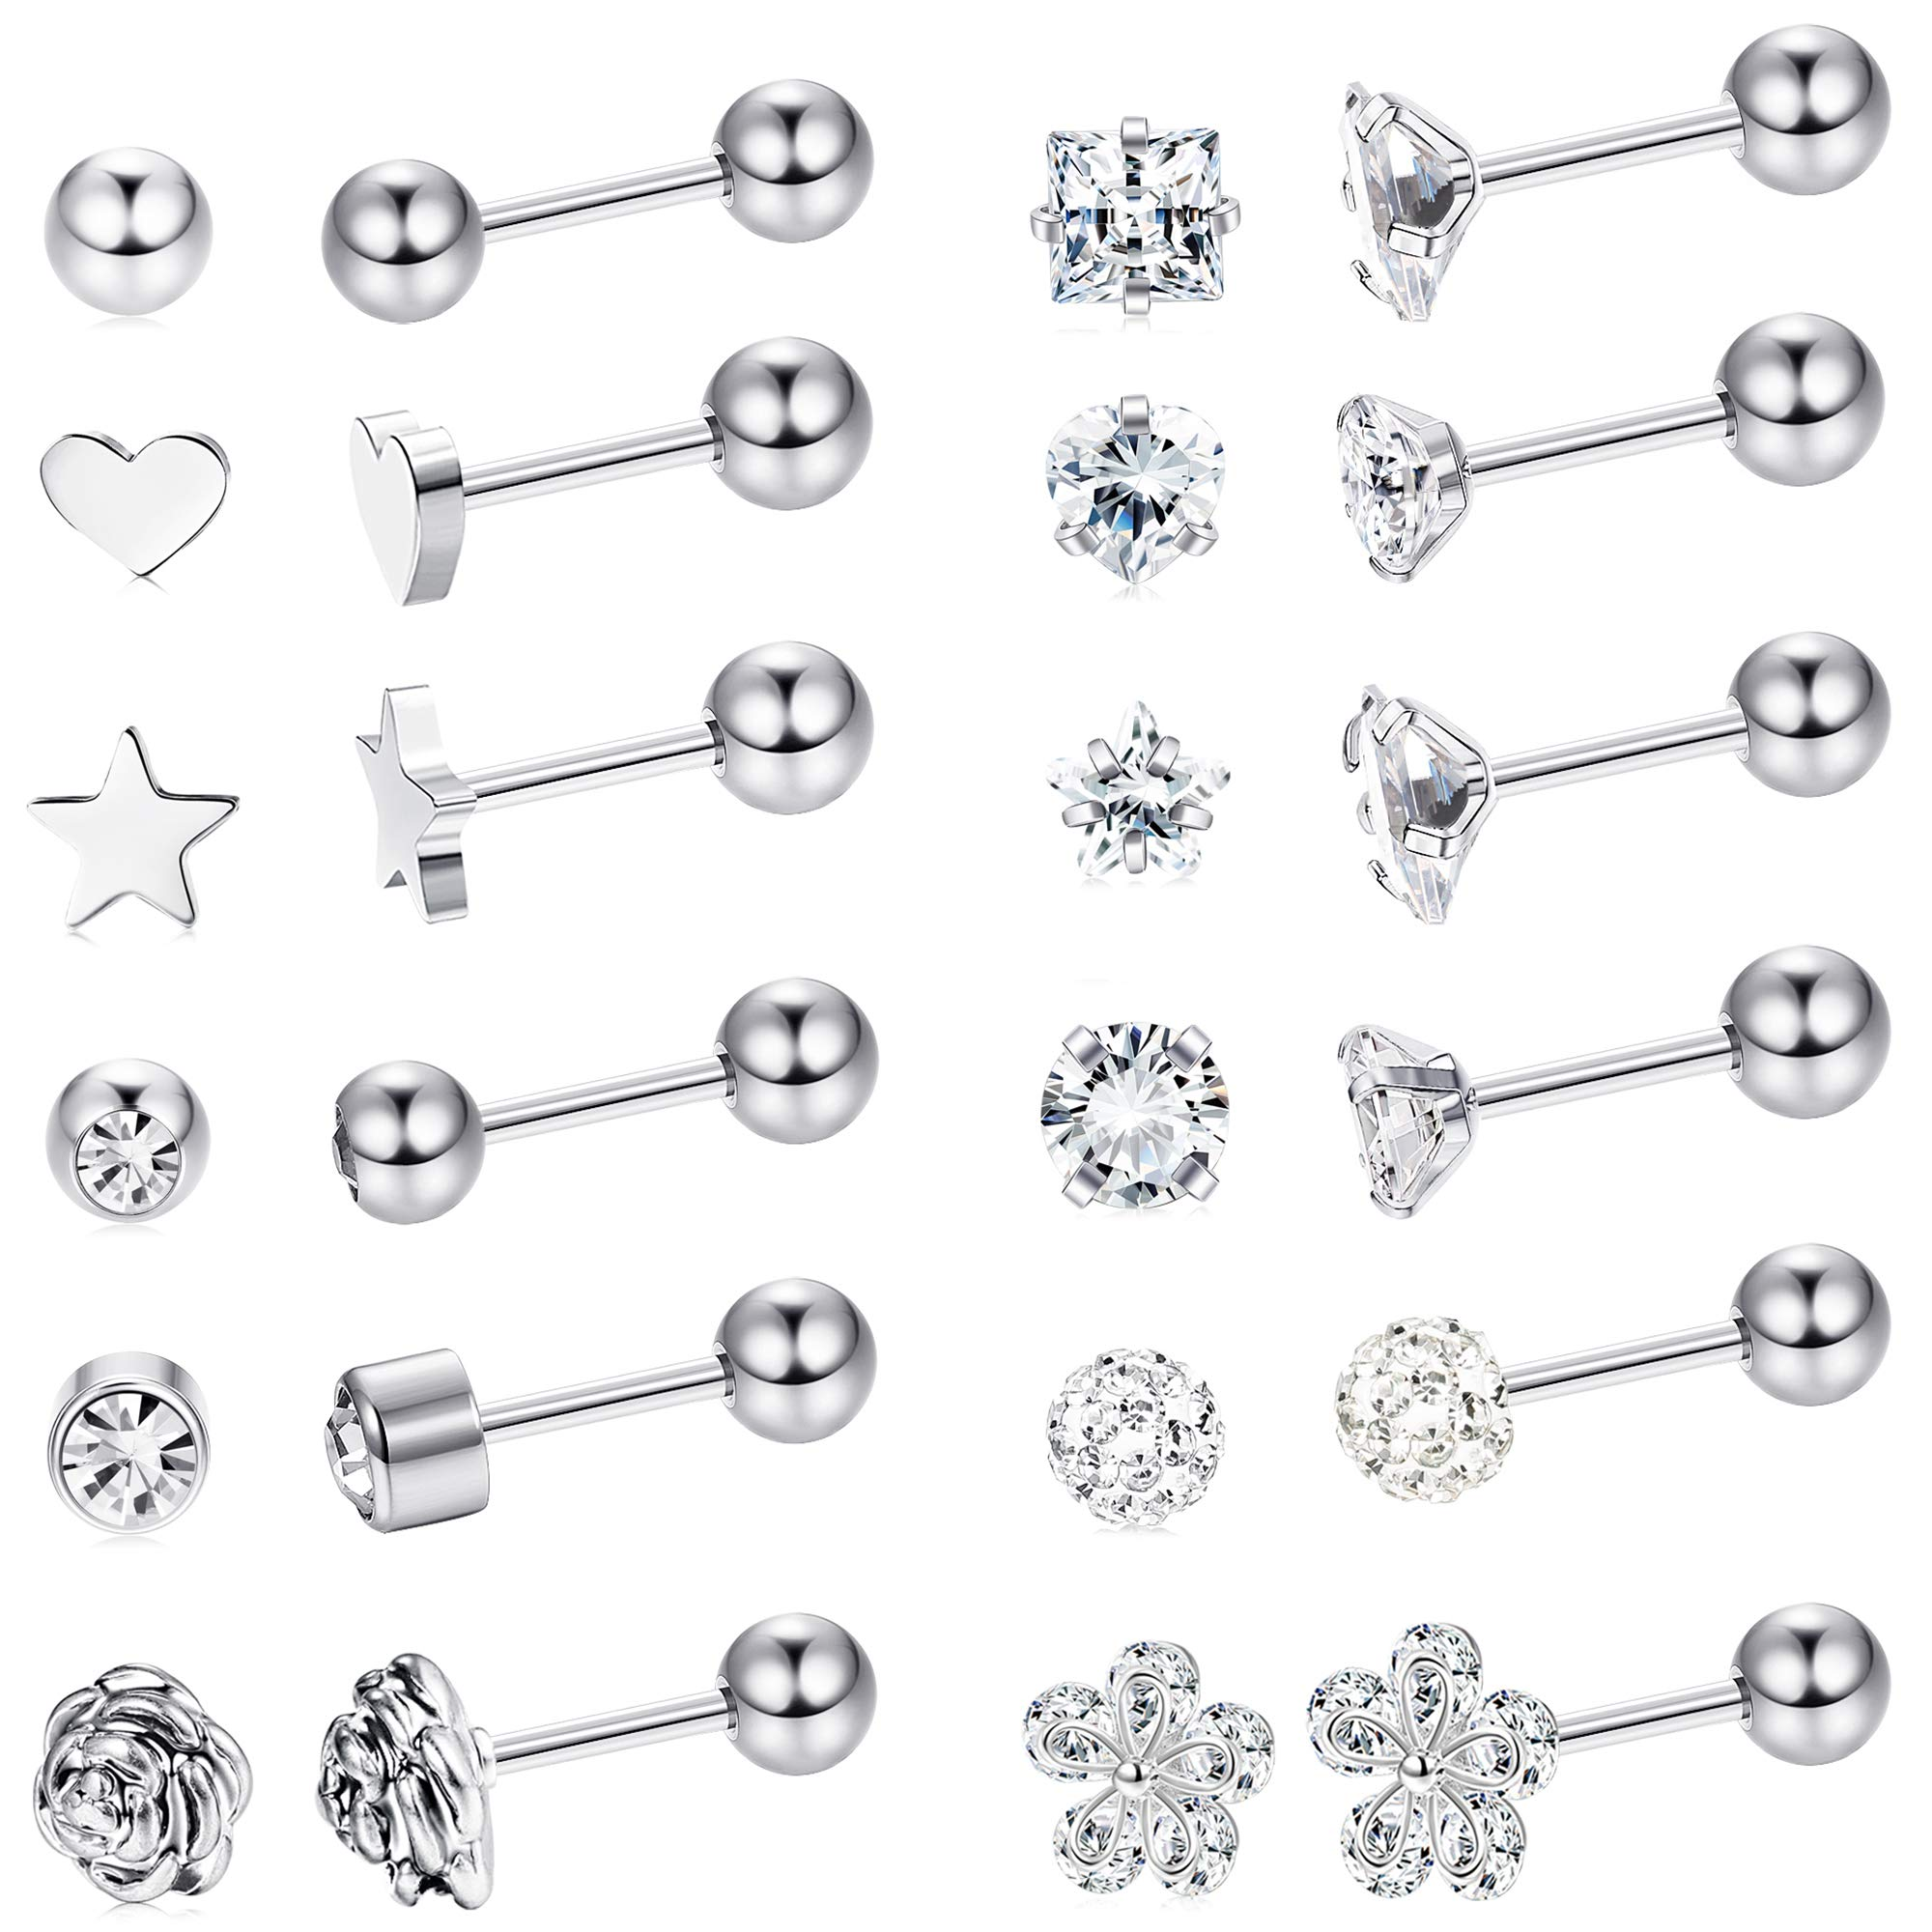 LOYALLOOK 8 Pairs Stainless Steel Ball Stud Earrings Barbell Cartilage Helix Ear Piercing 3-6mm 2 Colors (18G 12 Pairs Silver Tone 4mm) by LOYALLOOK